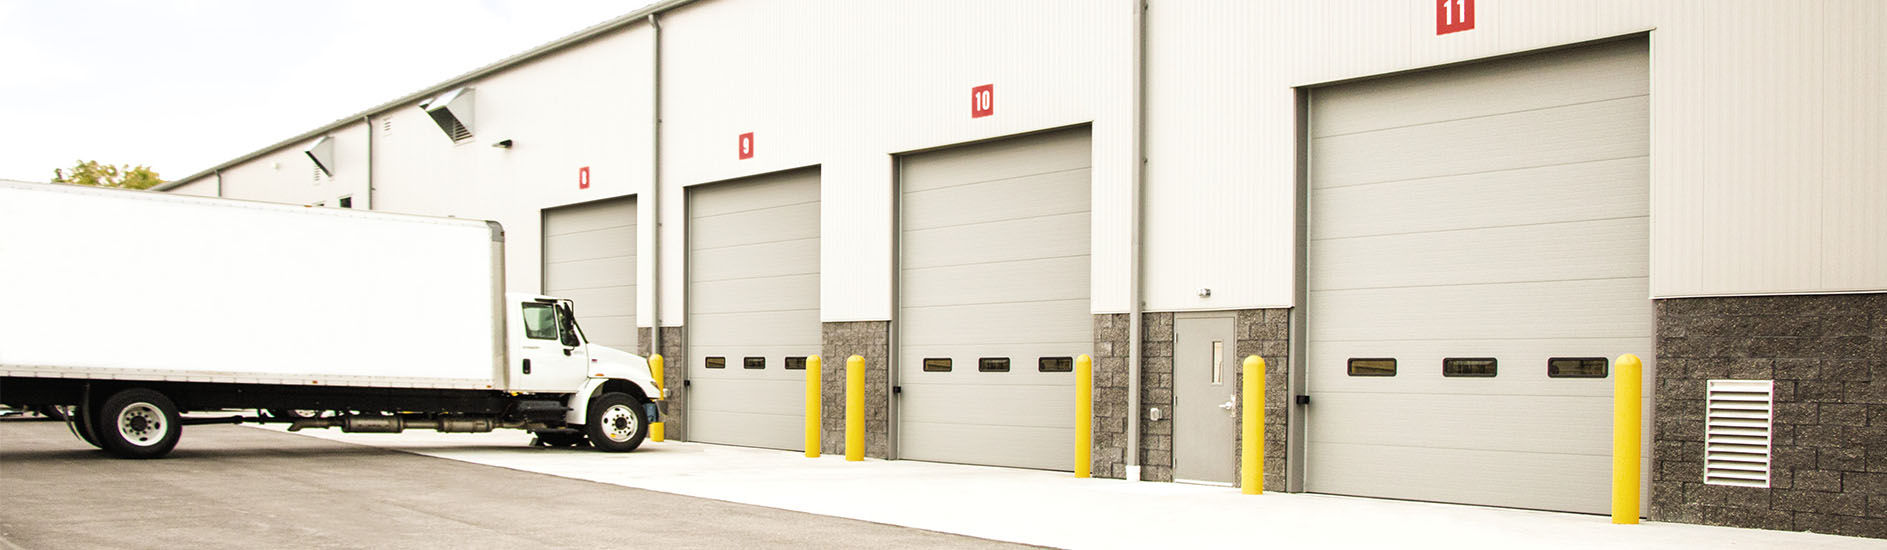 Sectional Overhead Doors Commercial : Commercial sectional doors barton overhead door inc